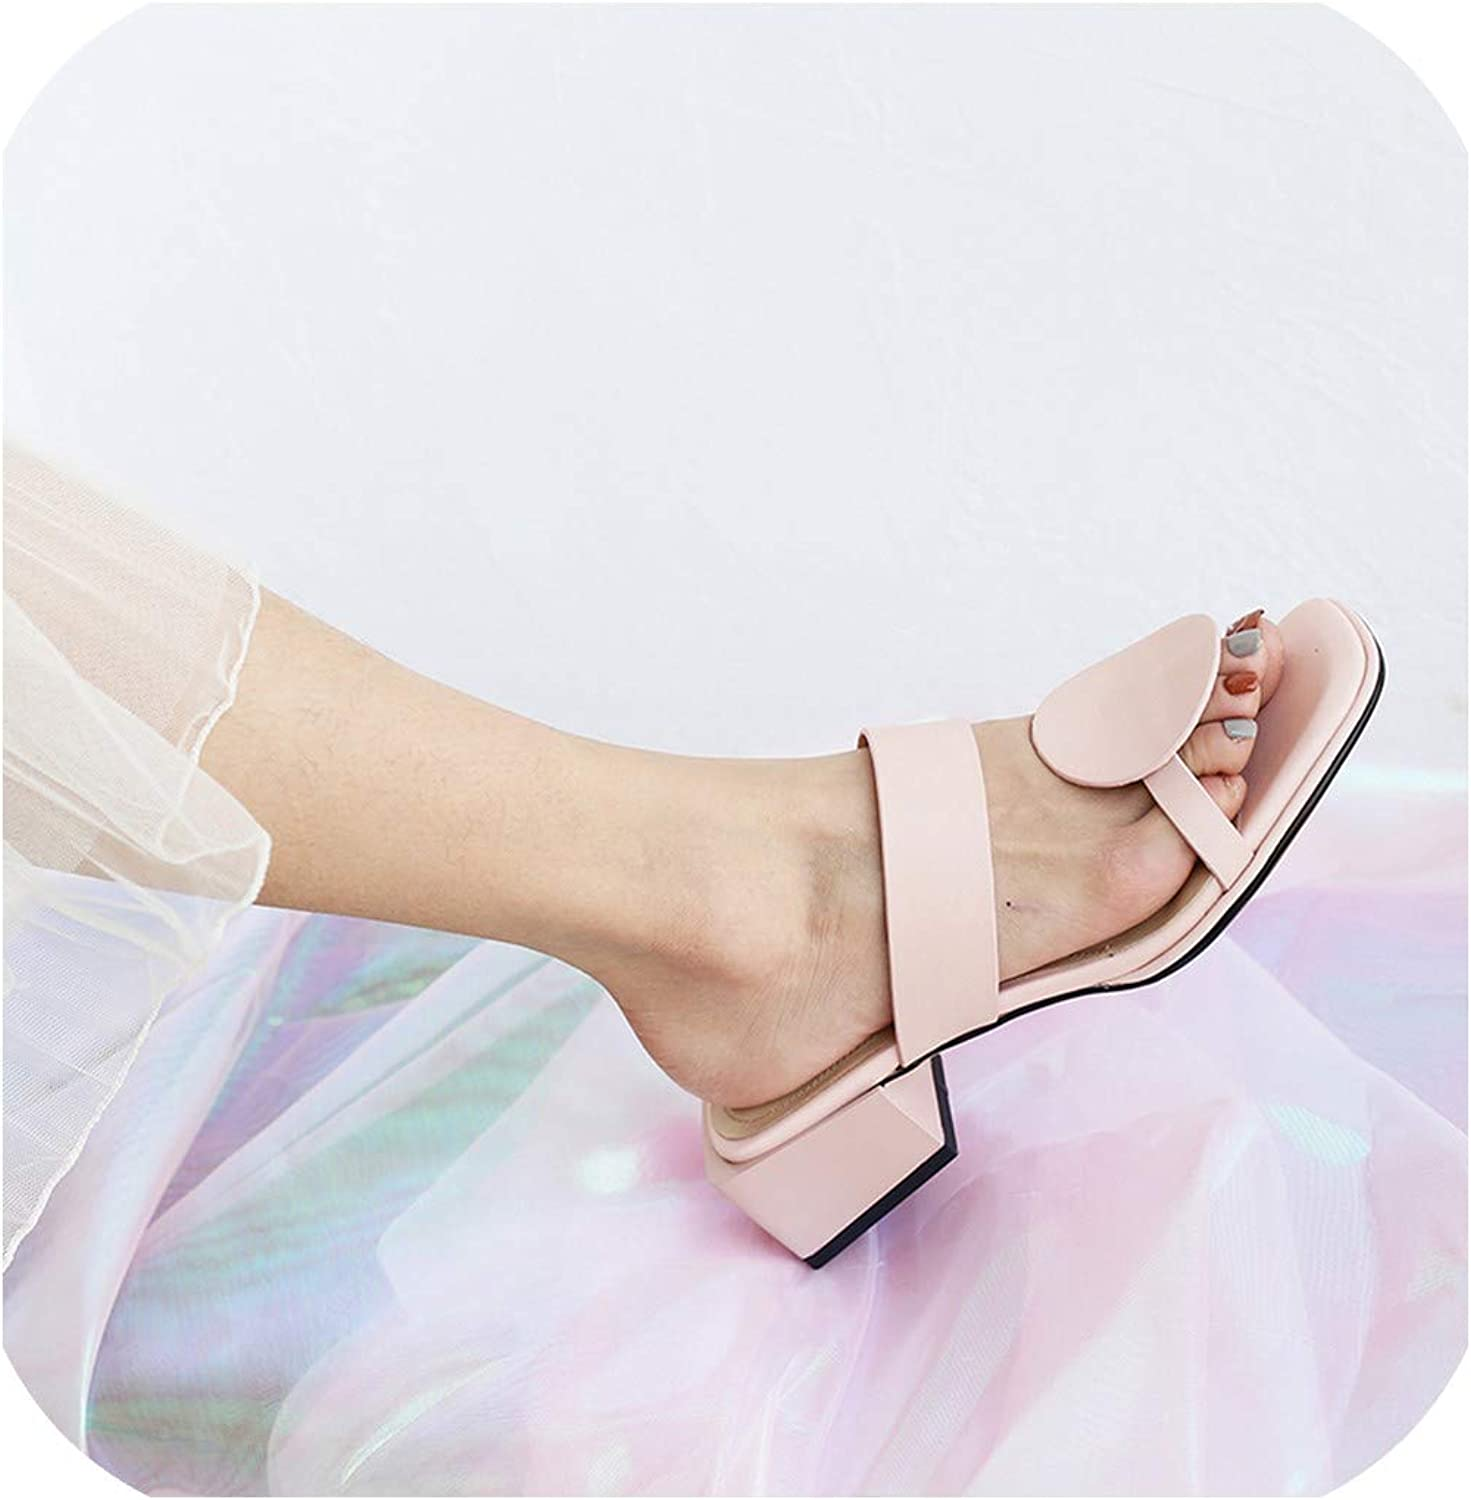 Women Slippers Square Heels Slipper Open Toe Women Sandals Pink bluee Ladies Casual shoes